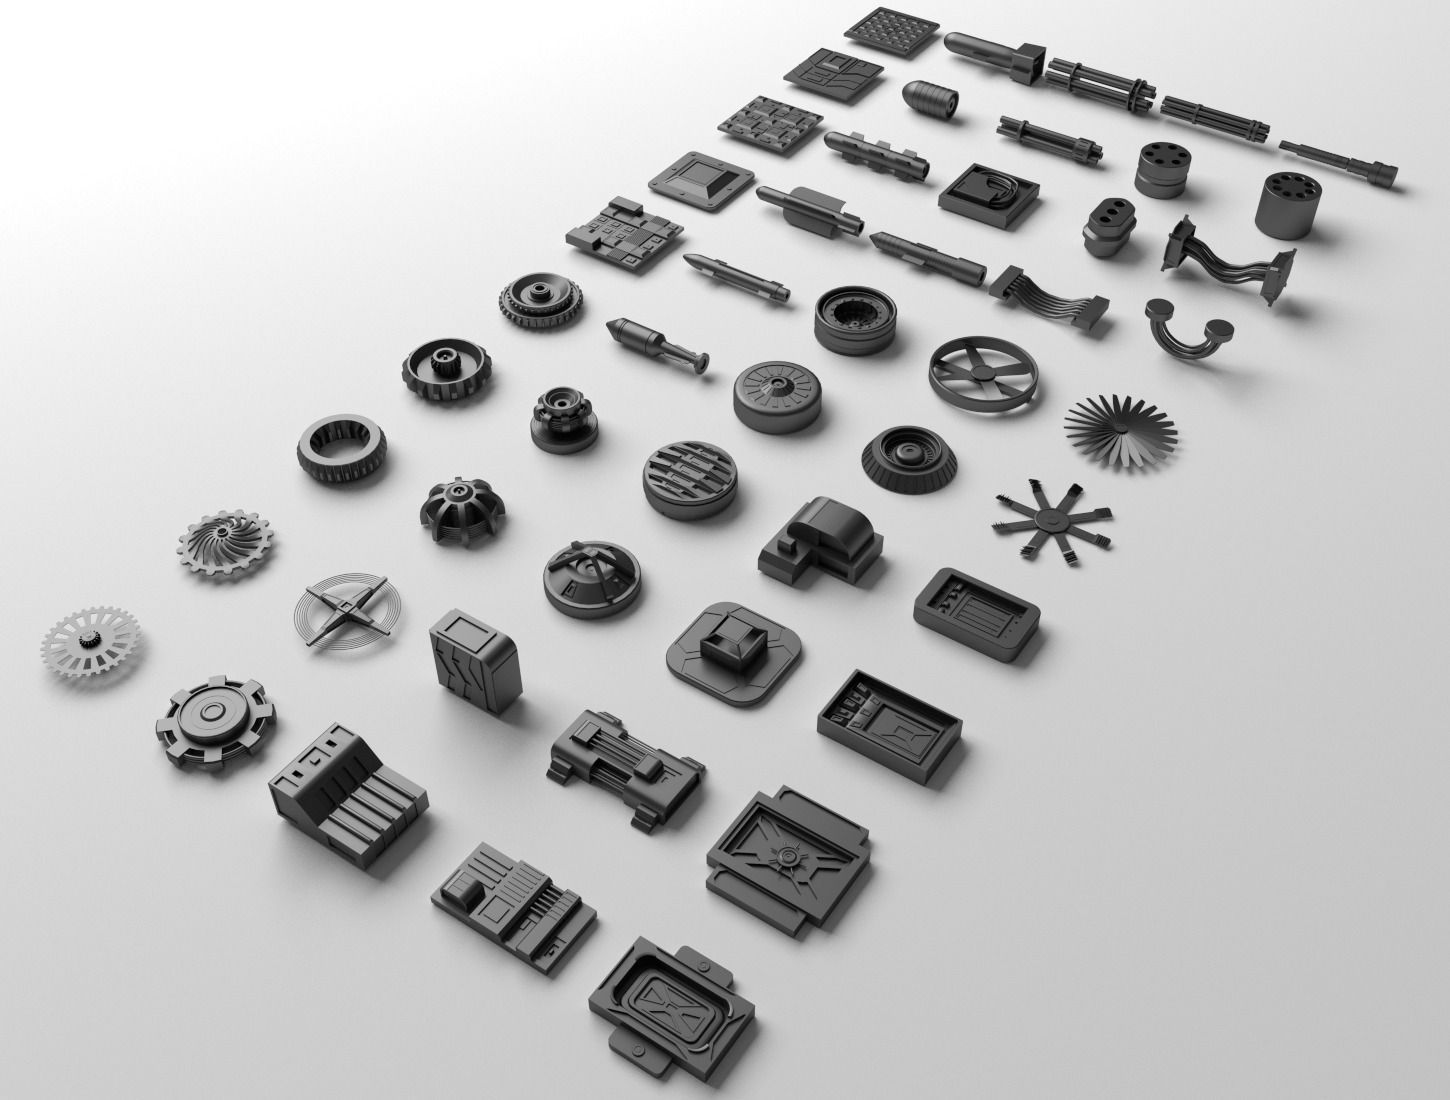 Technical parts collection 2